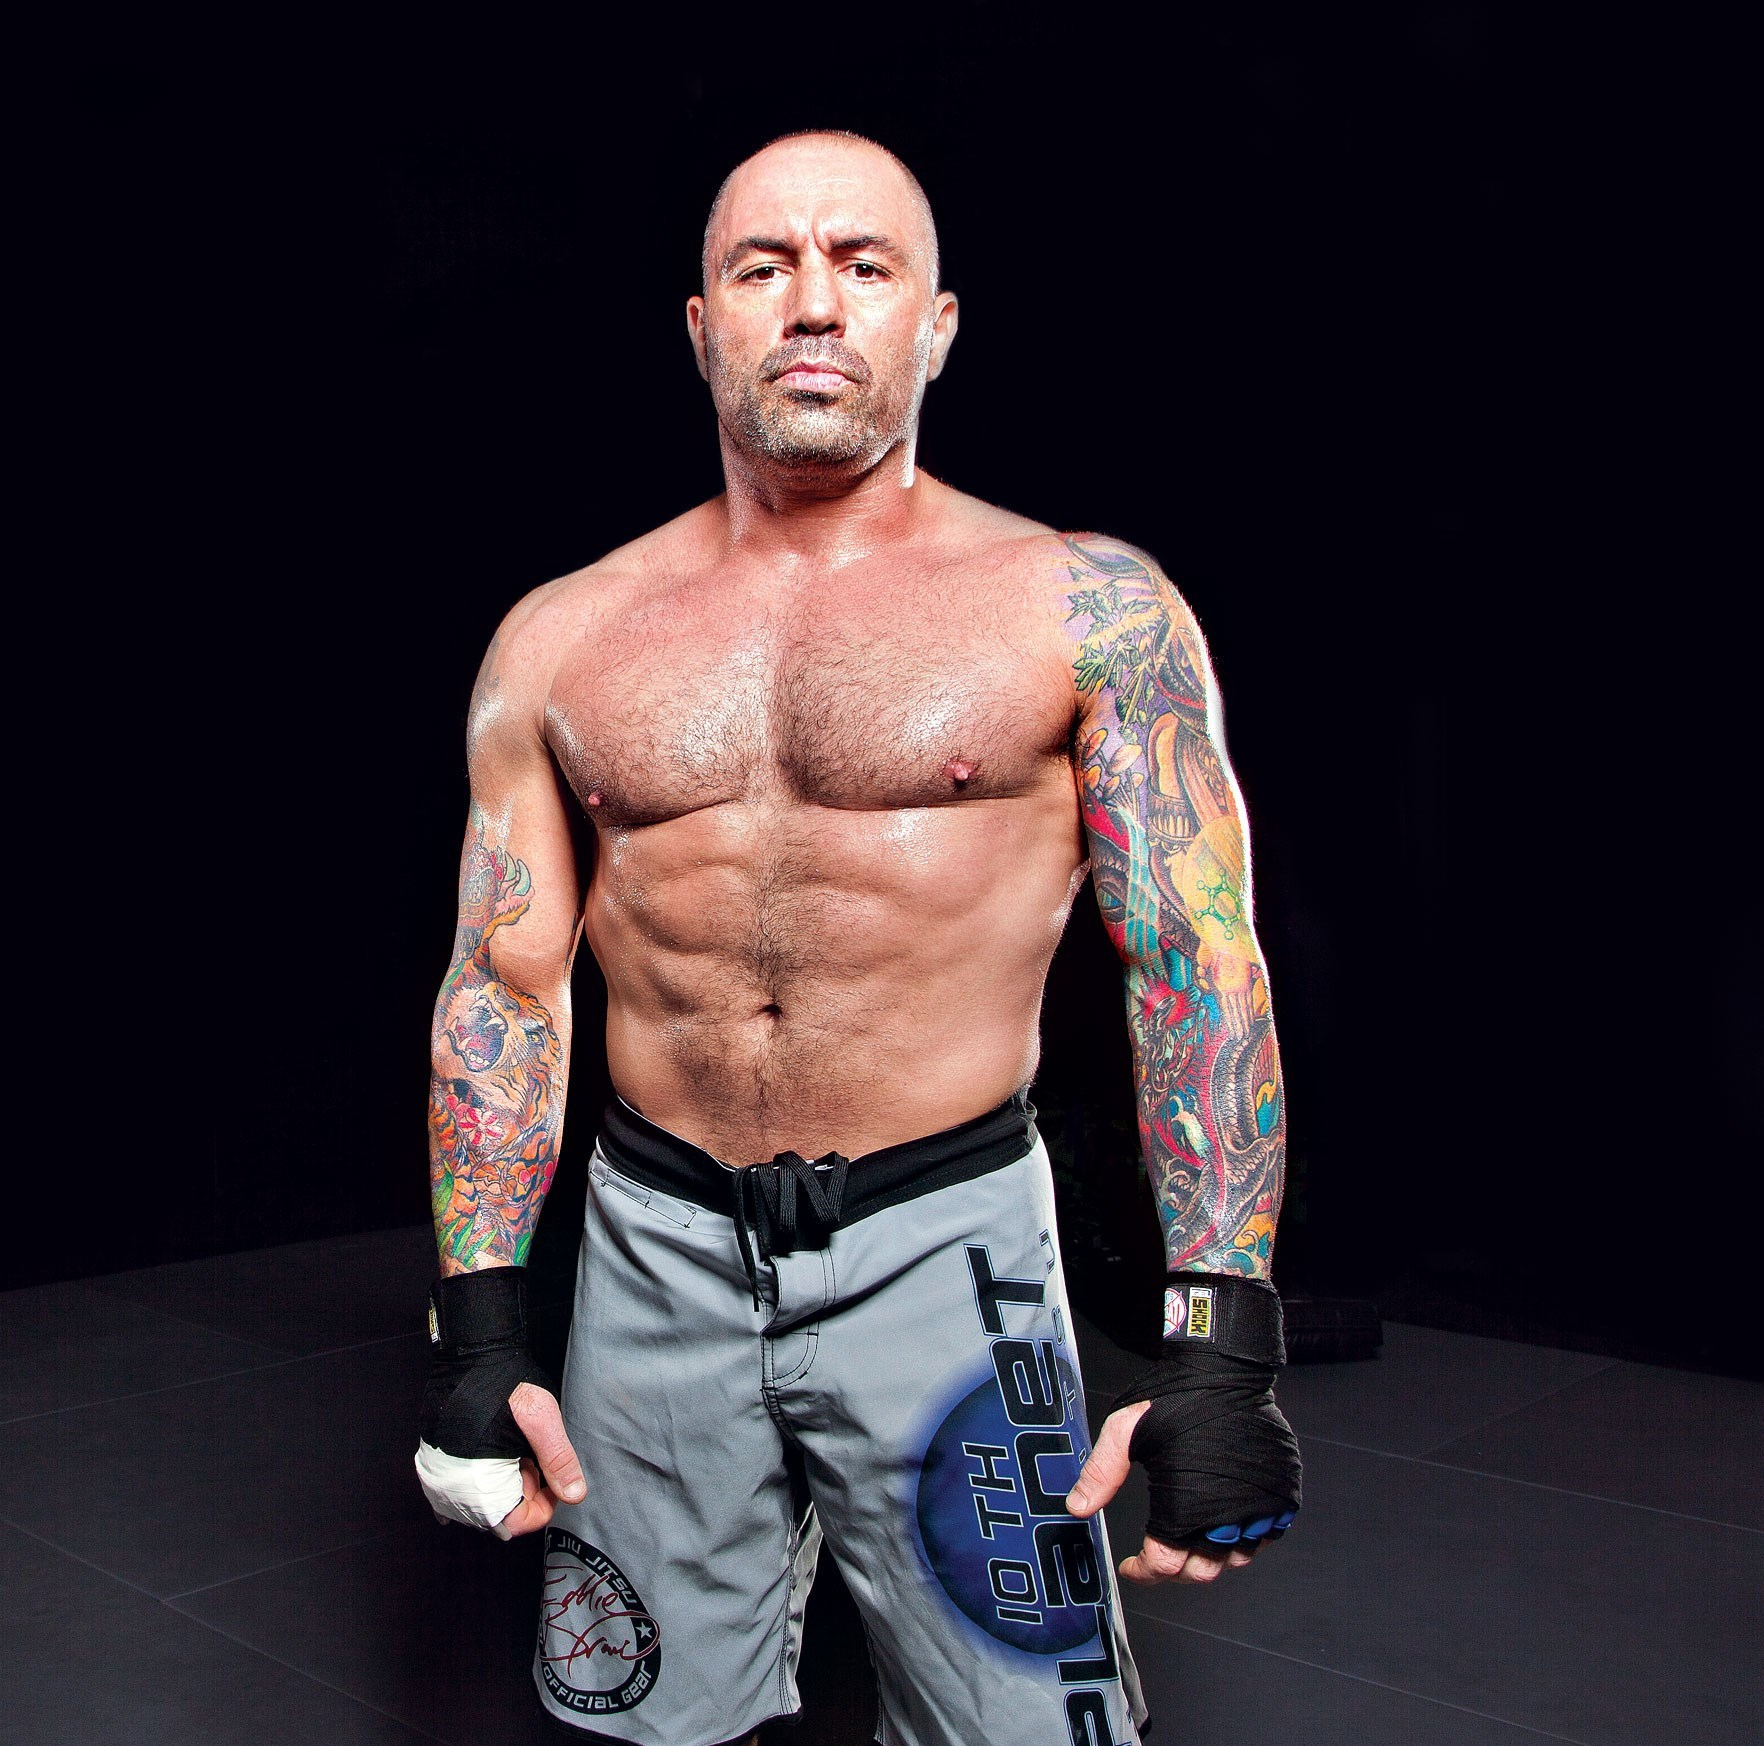 Joe Rogan | Known people - famous people news and biographies